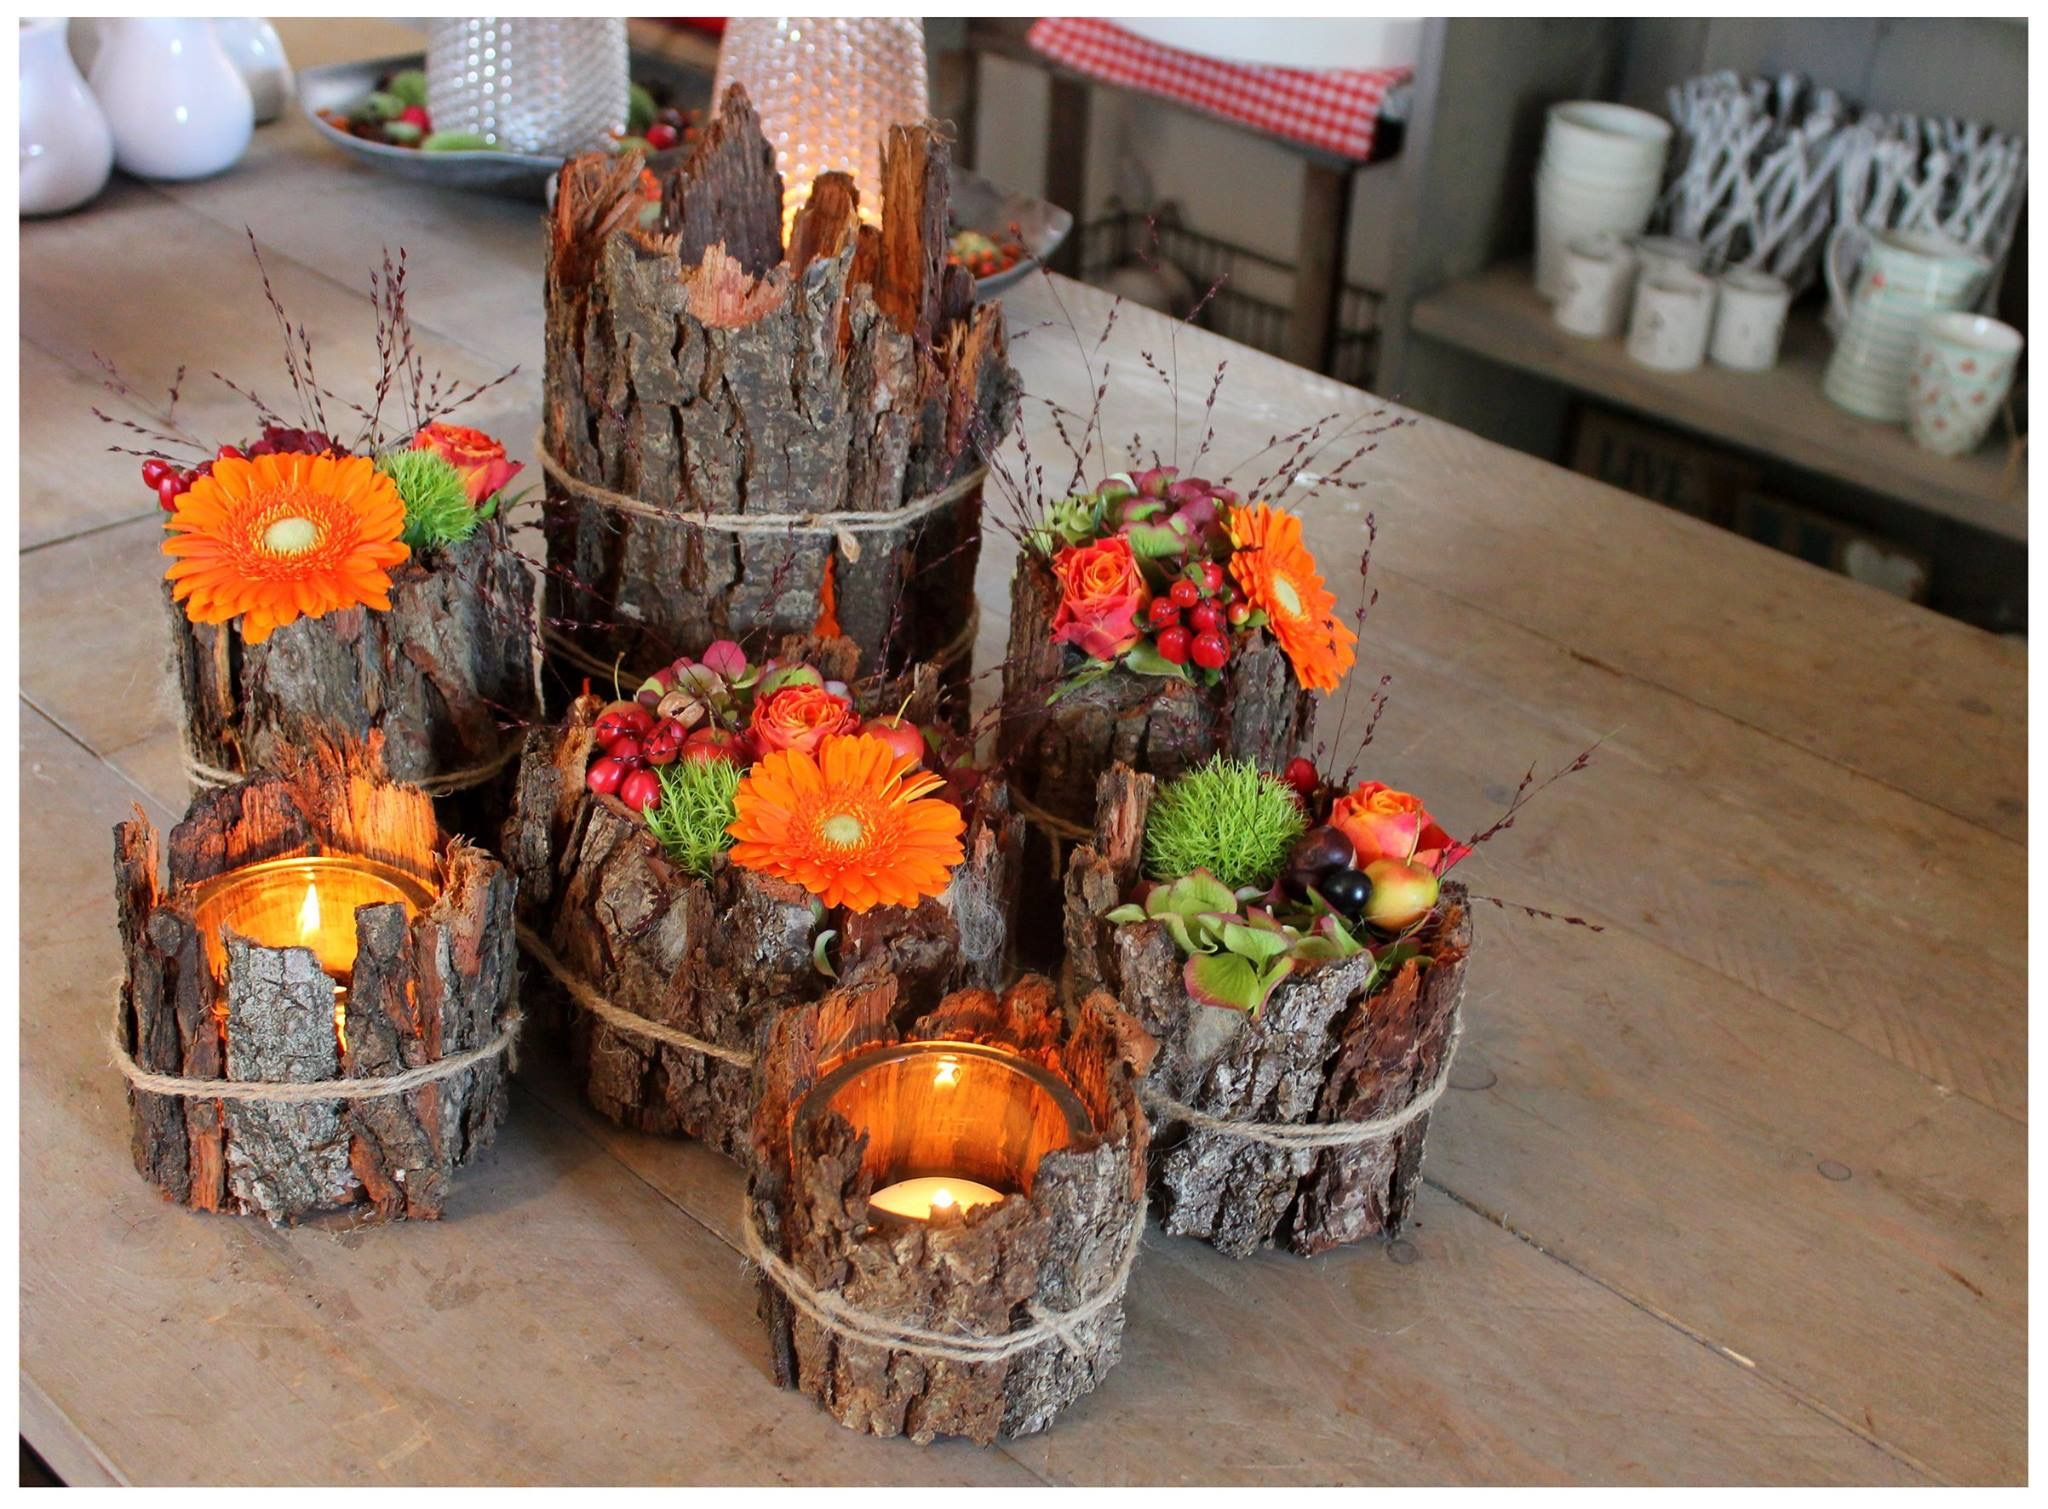 Herfst herfst pinterest herfst decoratie en for Decoratie herfst